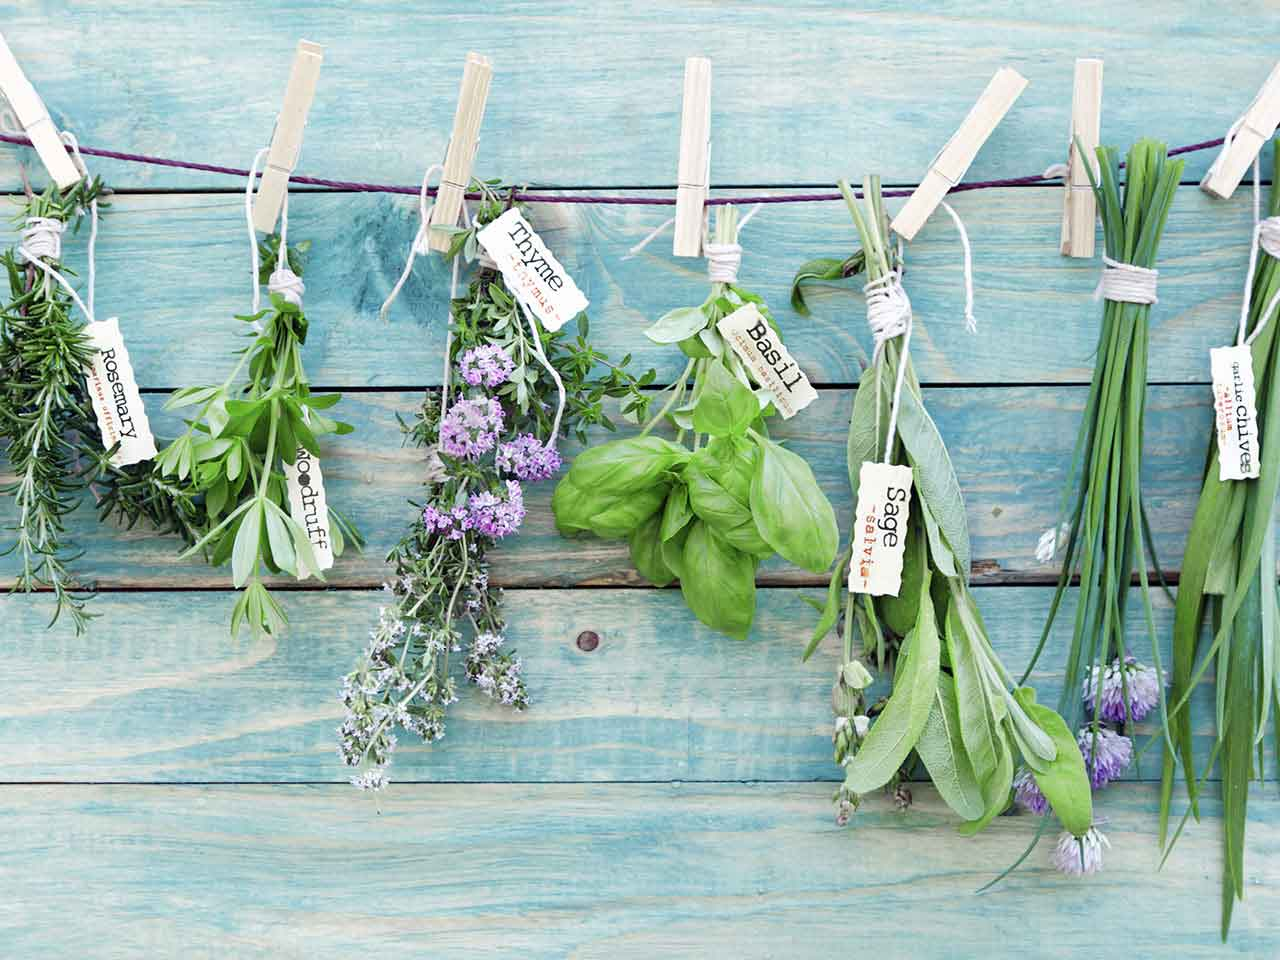 Herbs hanging up against a wooden wall